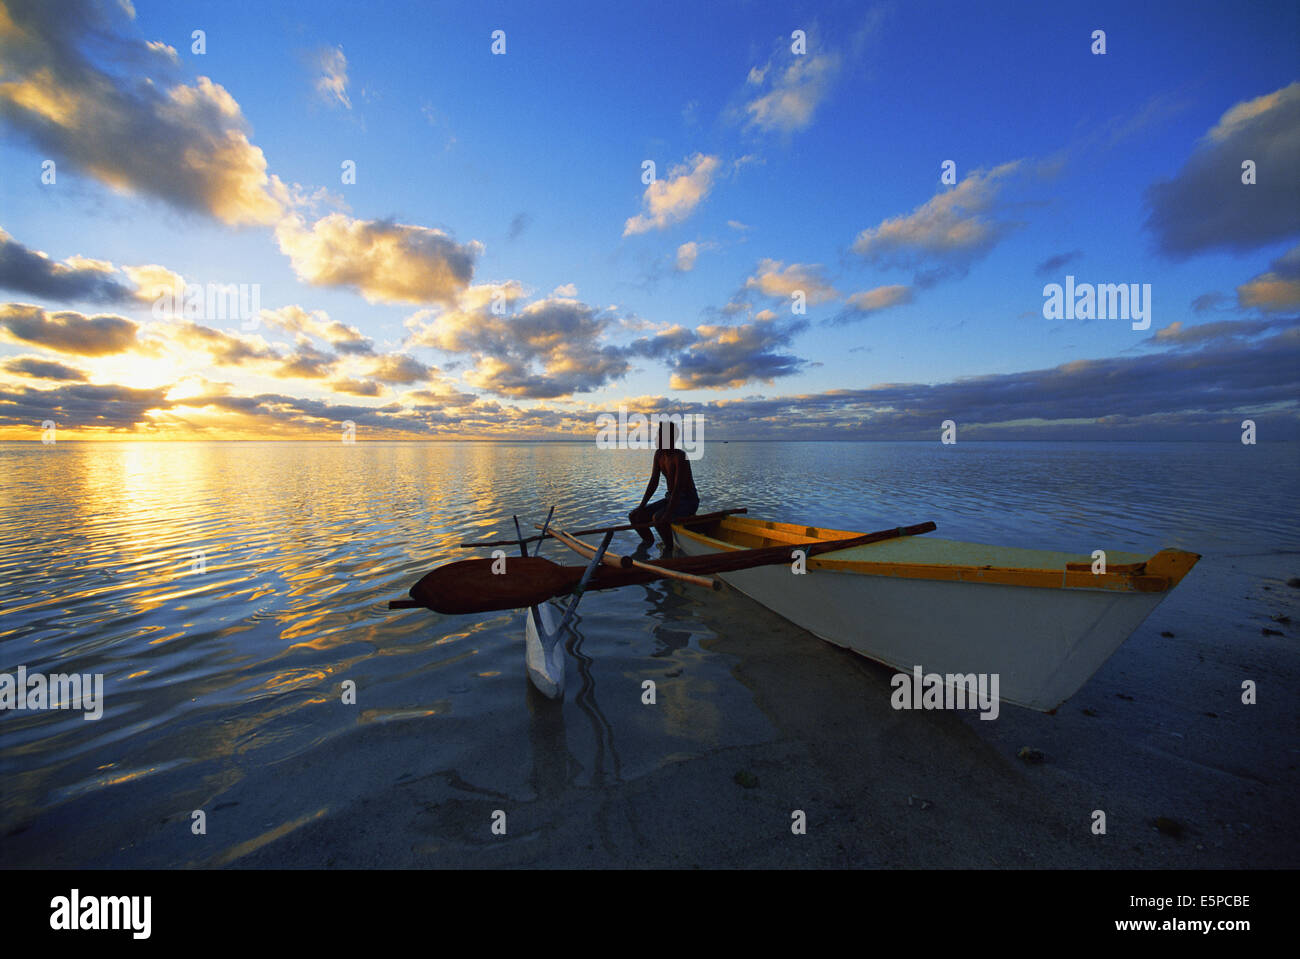 Person sitting on a canoe in Aitutaki, Cook Islands - Stock Image